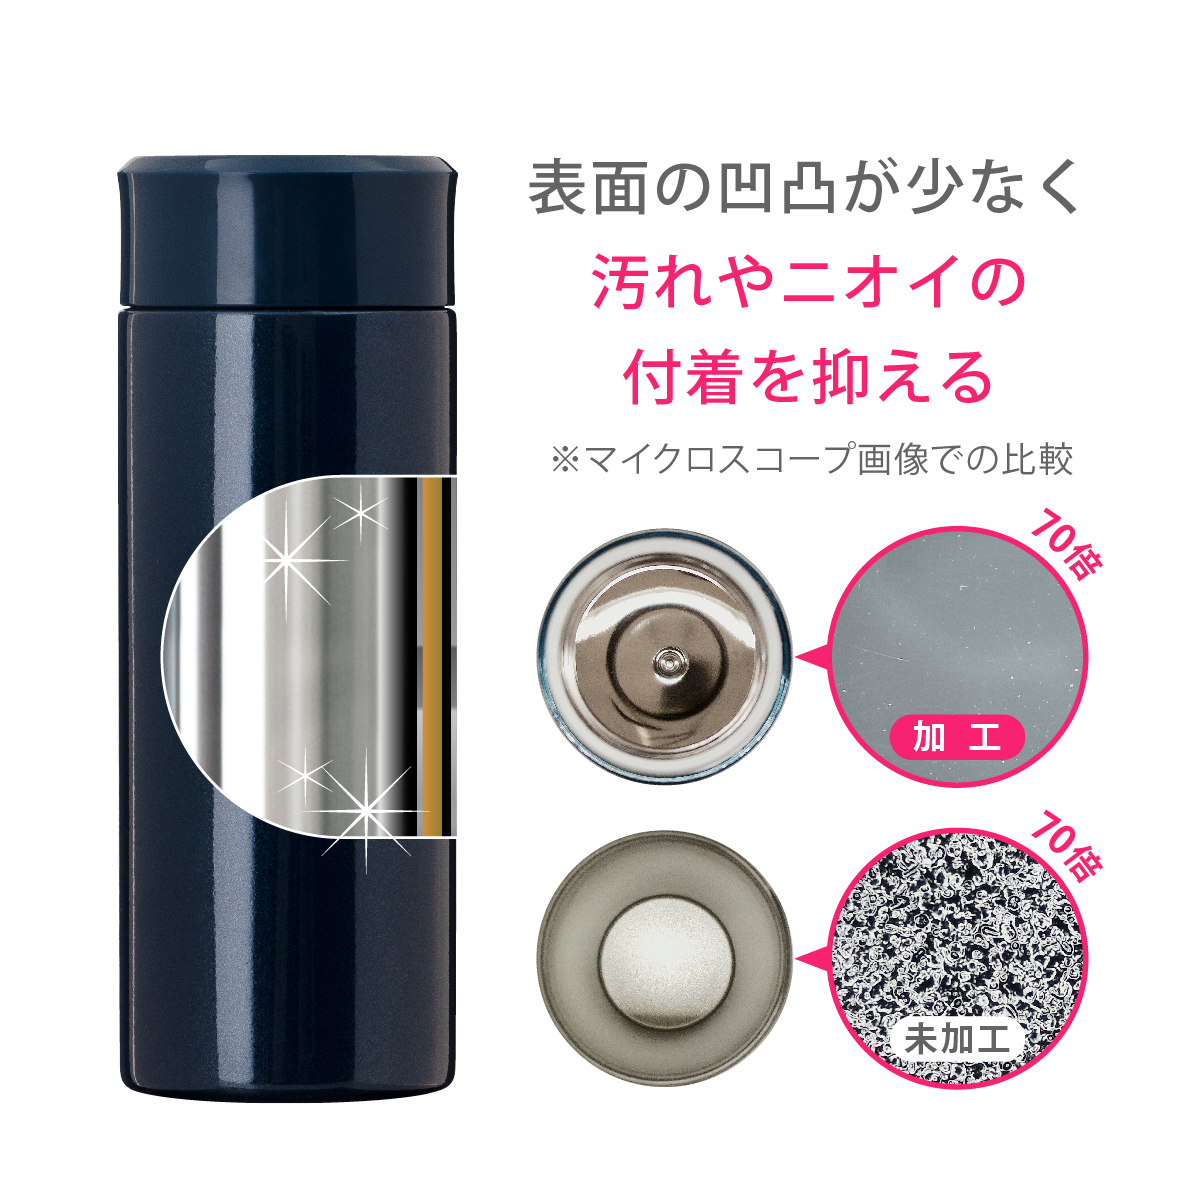 Airlist 超軽量スリムボトル 400ml ピンク image03 thumbnail